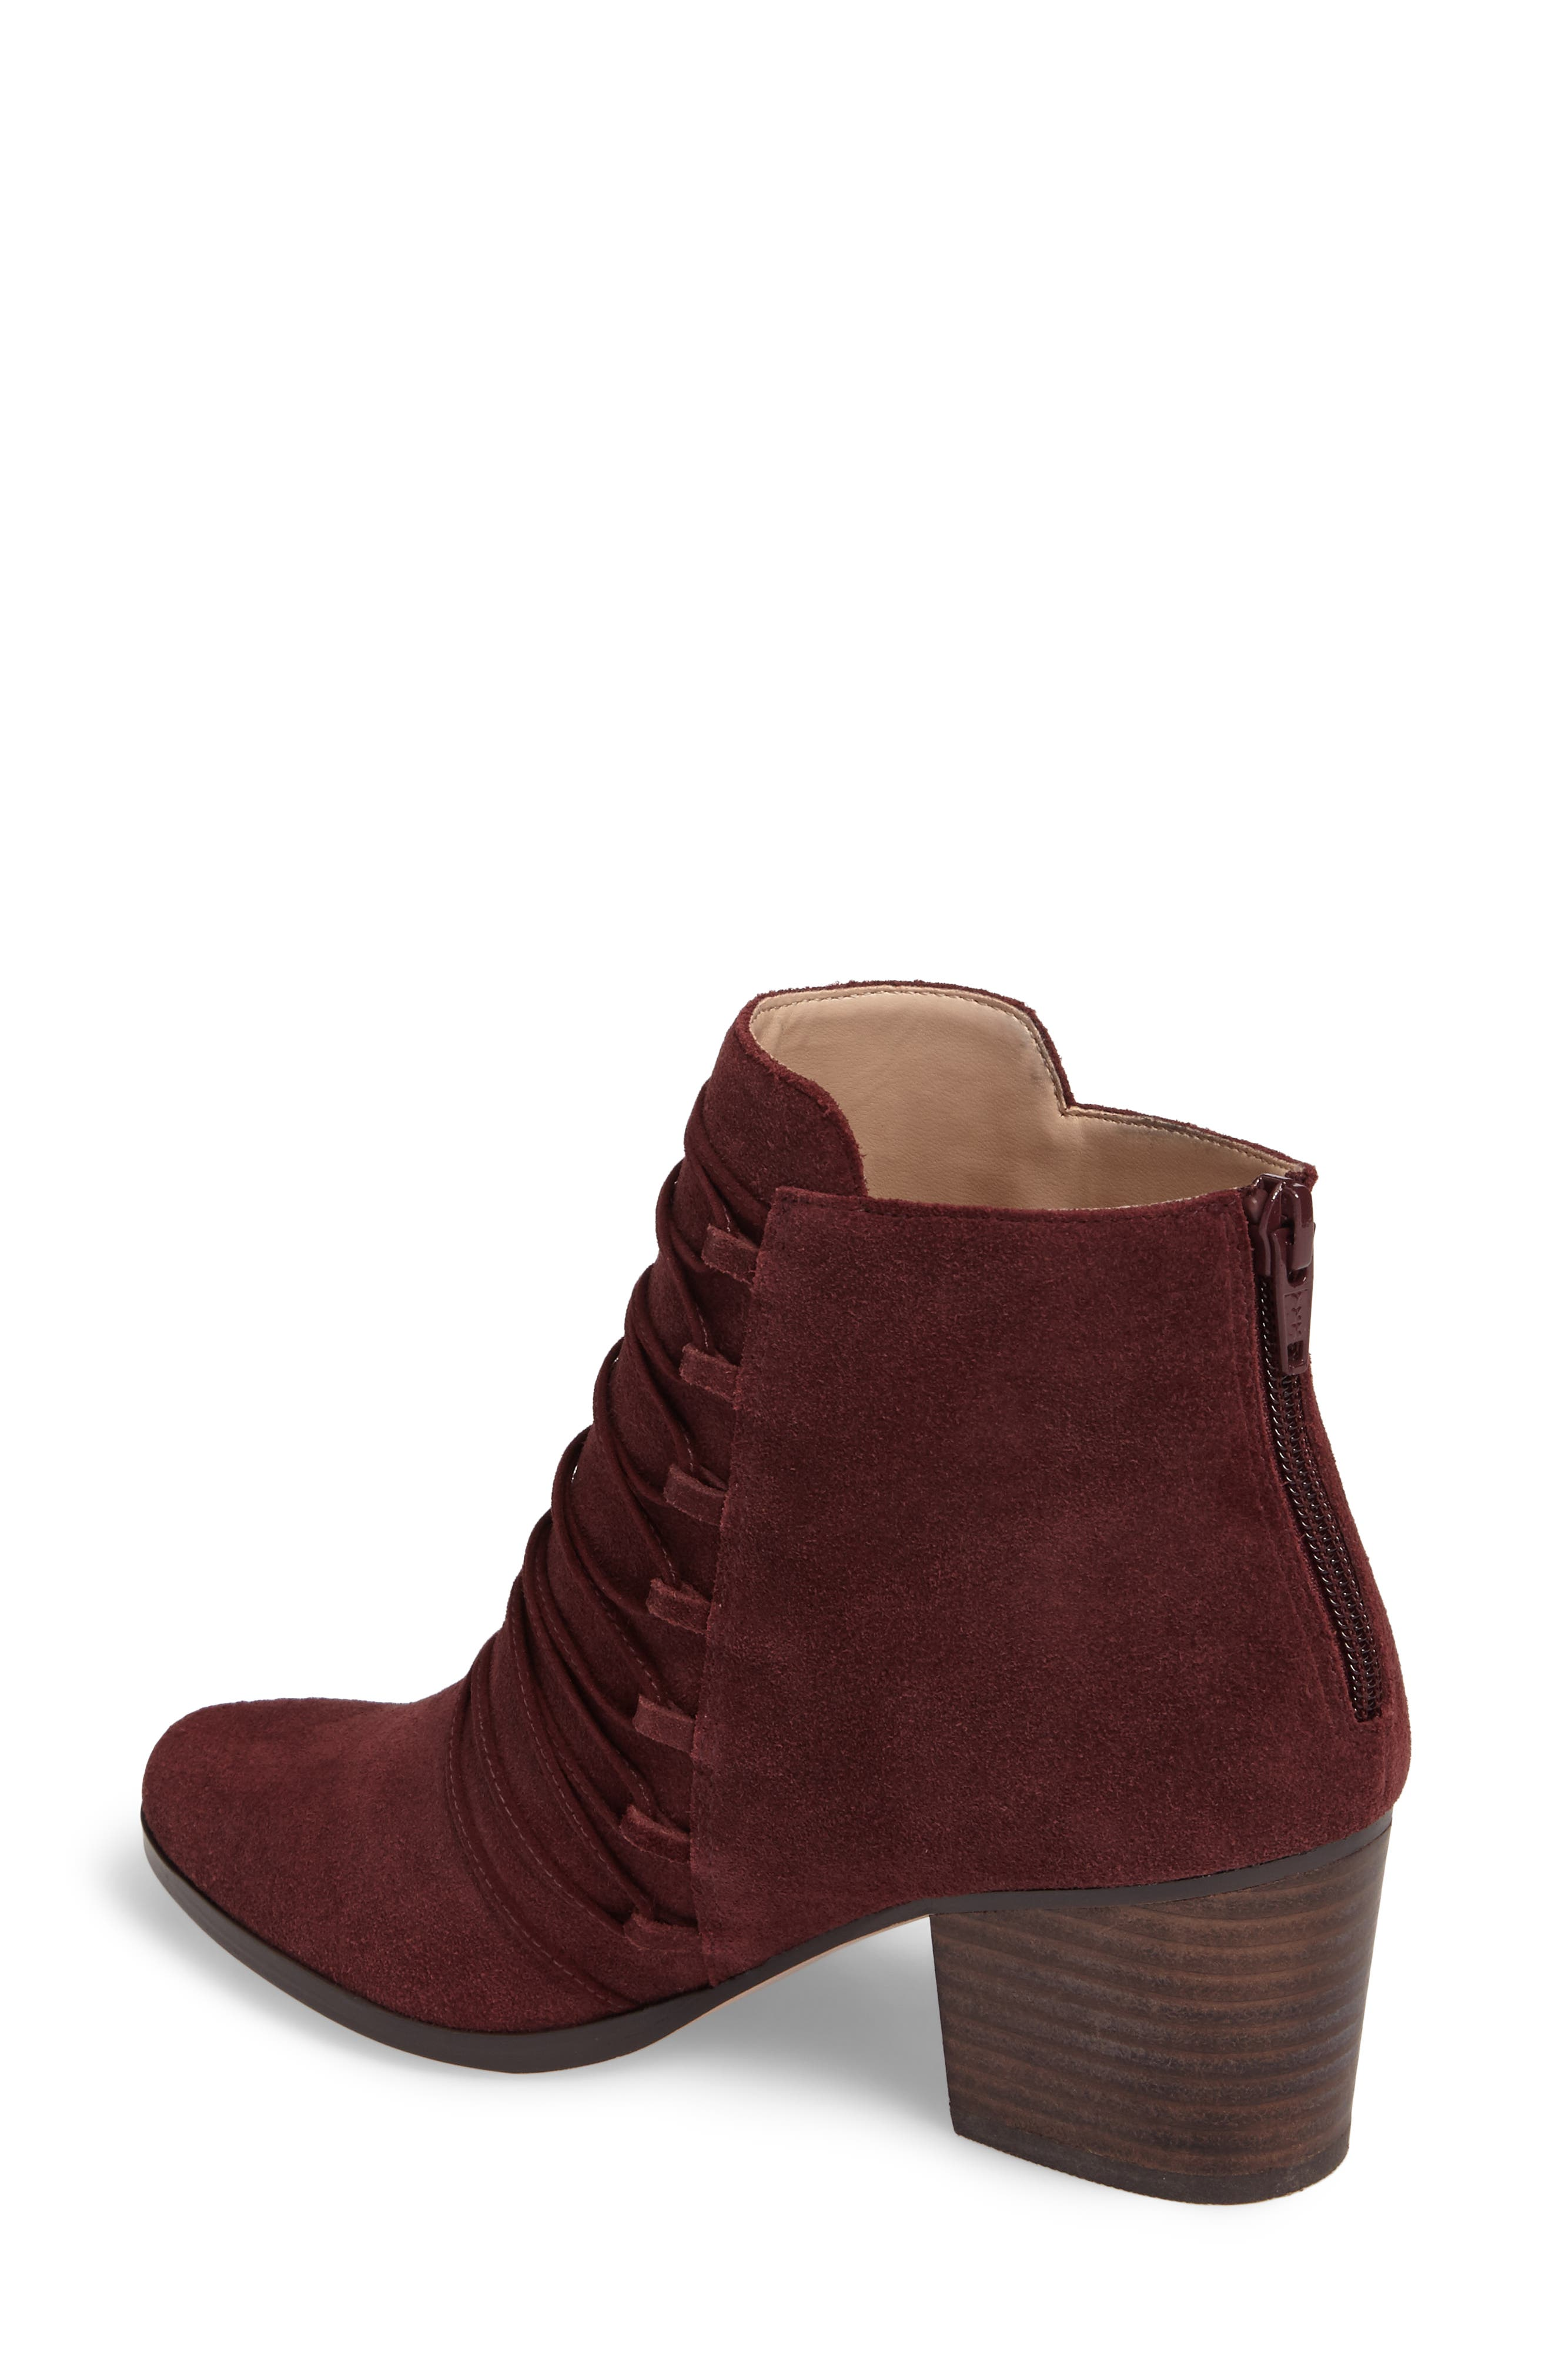 Alternate Image 2  - Sole Society Bellevue Bootie (Women)